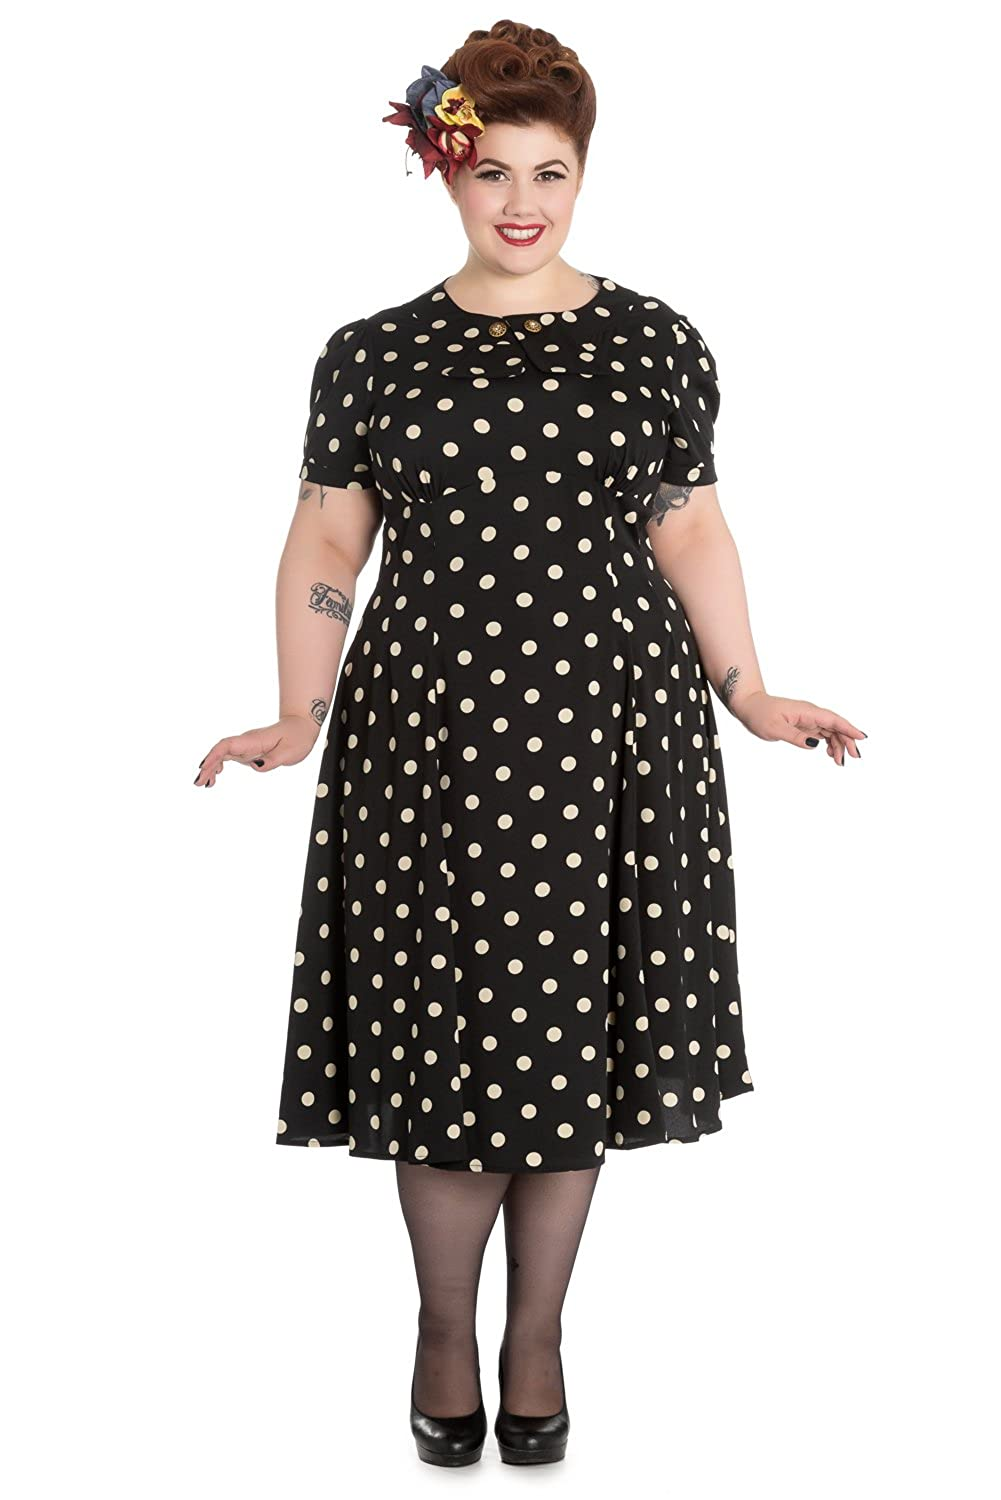 1930s Day Dresses, Afternoon Dresses History Hell Bunny Plus Size Sweet Office Lady Black Mod Polka Dot Dress $72.00 AT vintagedancer.com